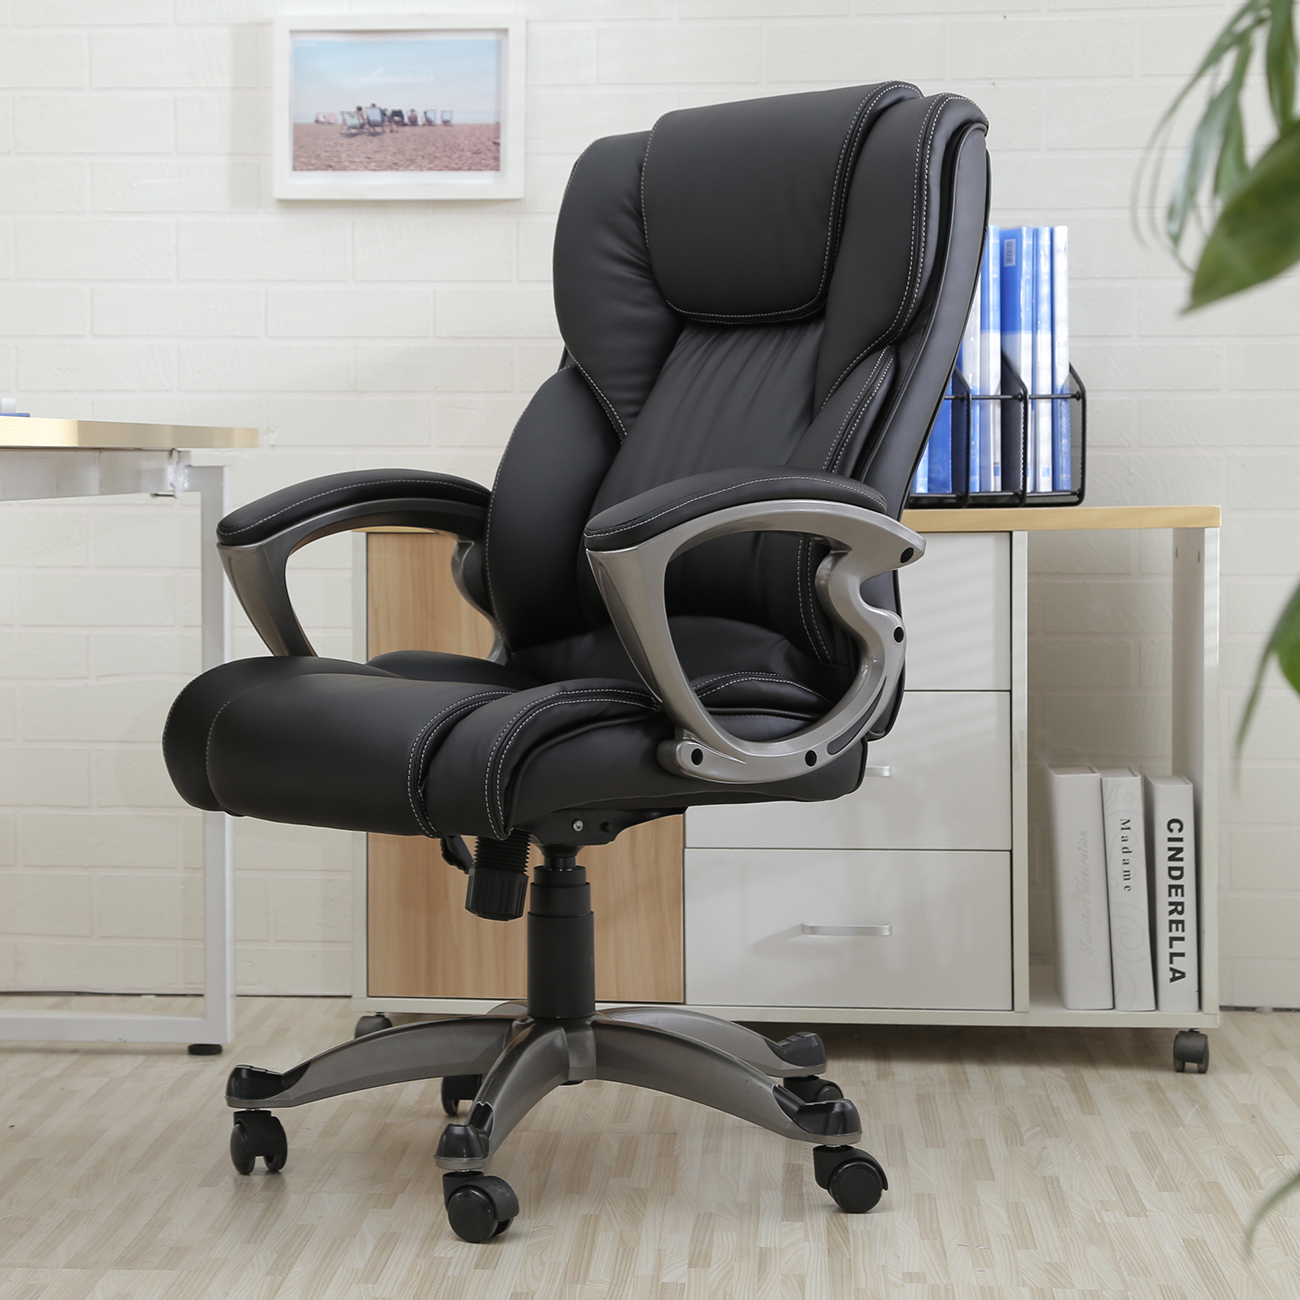 high quality office chairs ergonomic mity lite folding executive chair back task computer desk study pu leather black